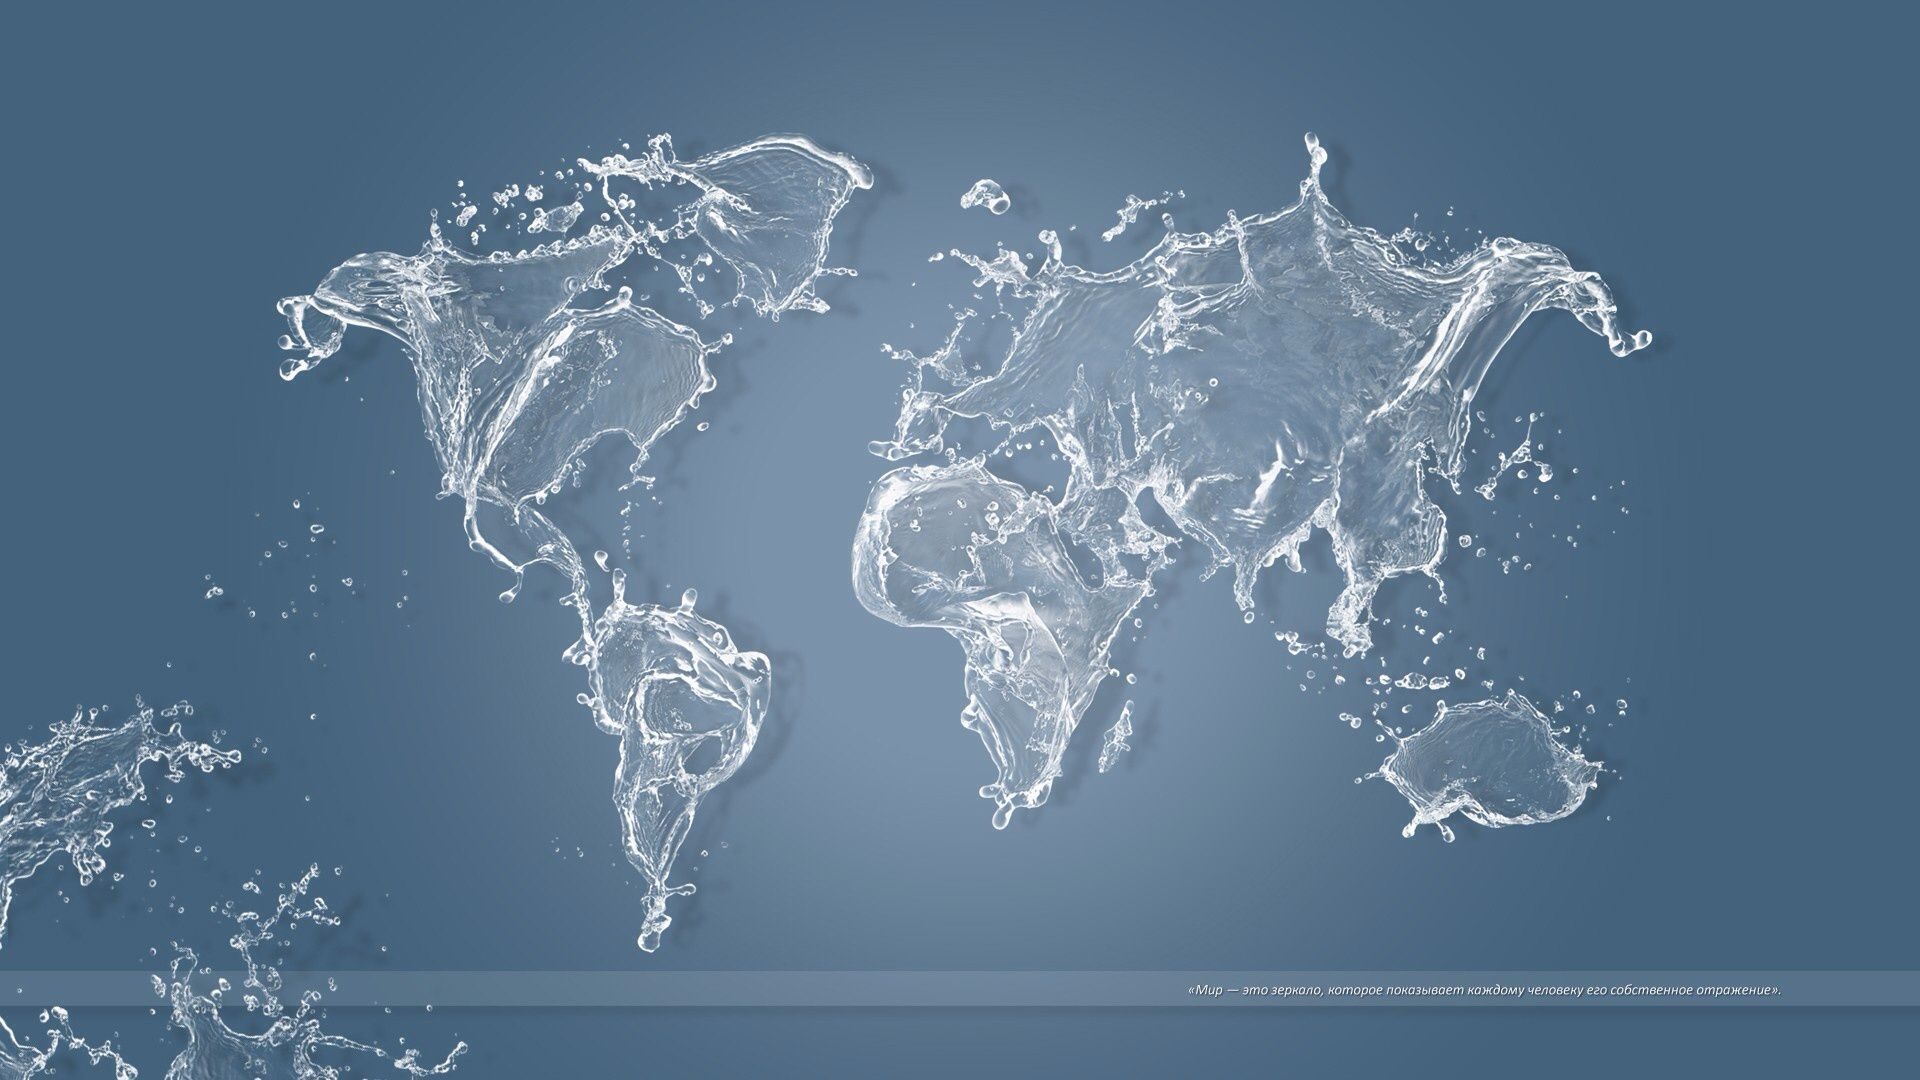 World map made by water droplets world maps pinterest water world map made by water droplets gumiabroncs Gallery